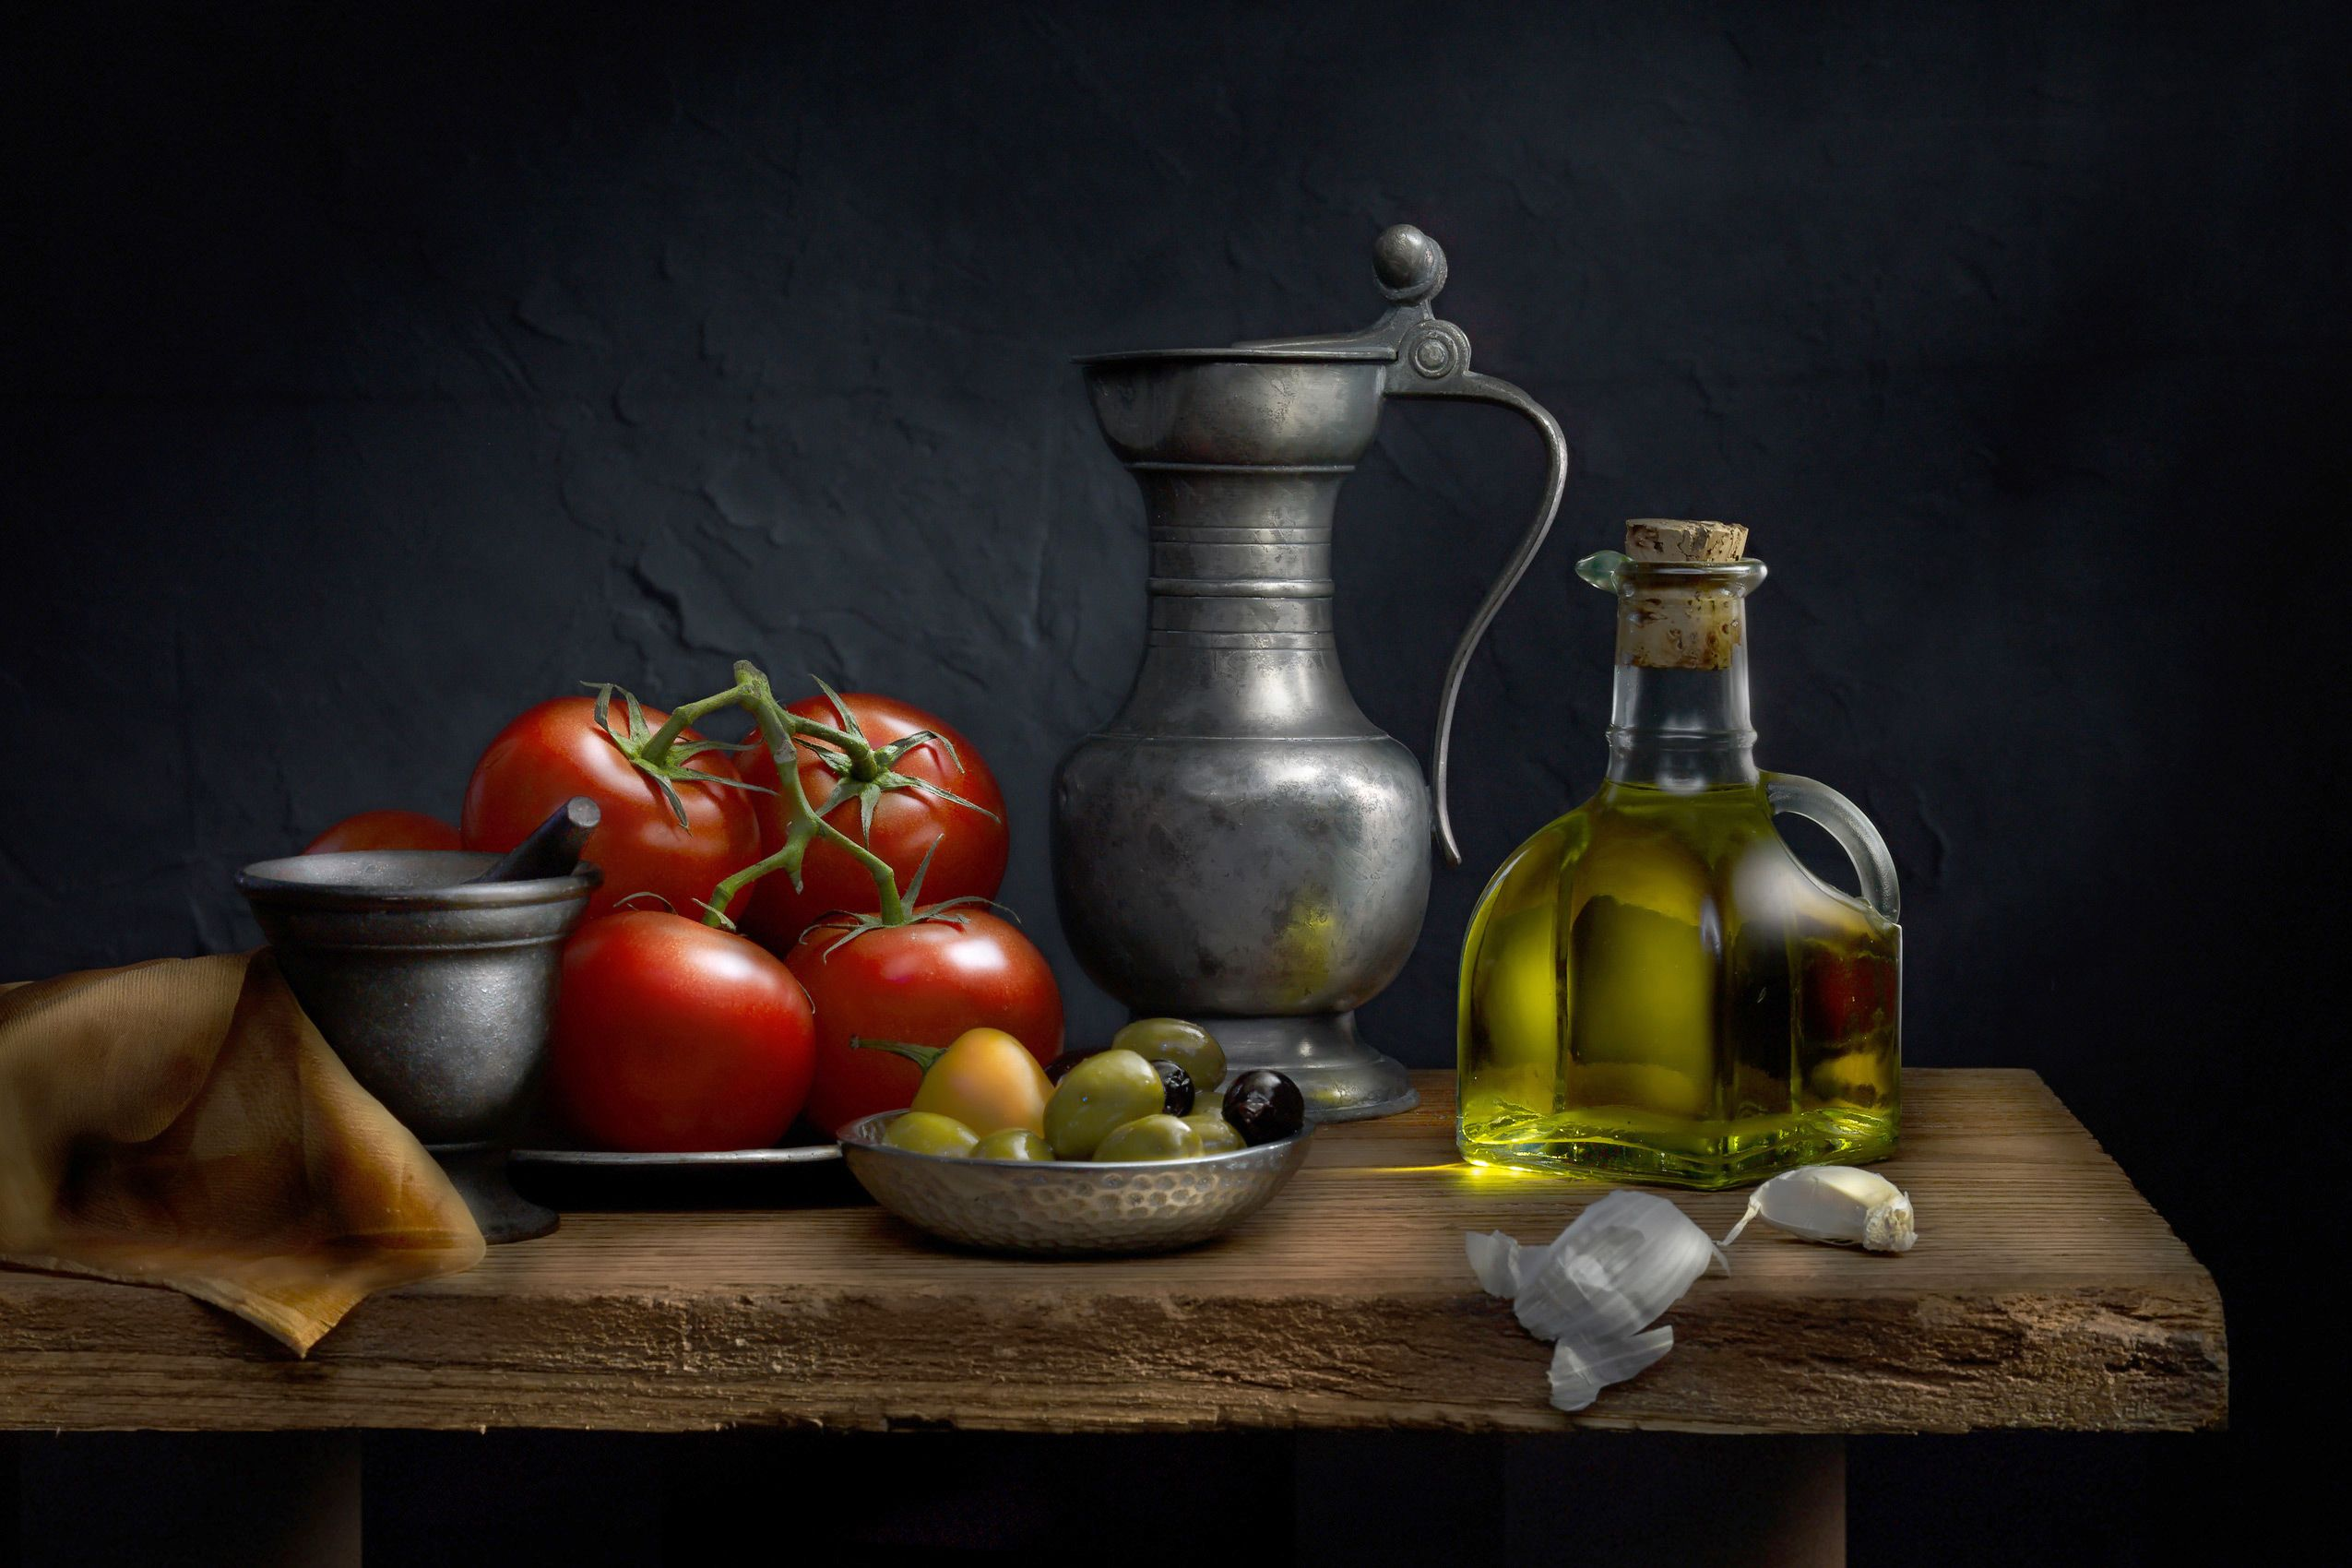 Still_Life_w_Tomatoes_and_Olive_Oil_LB.jpg